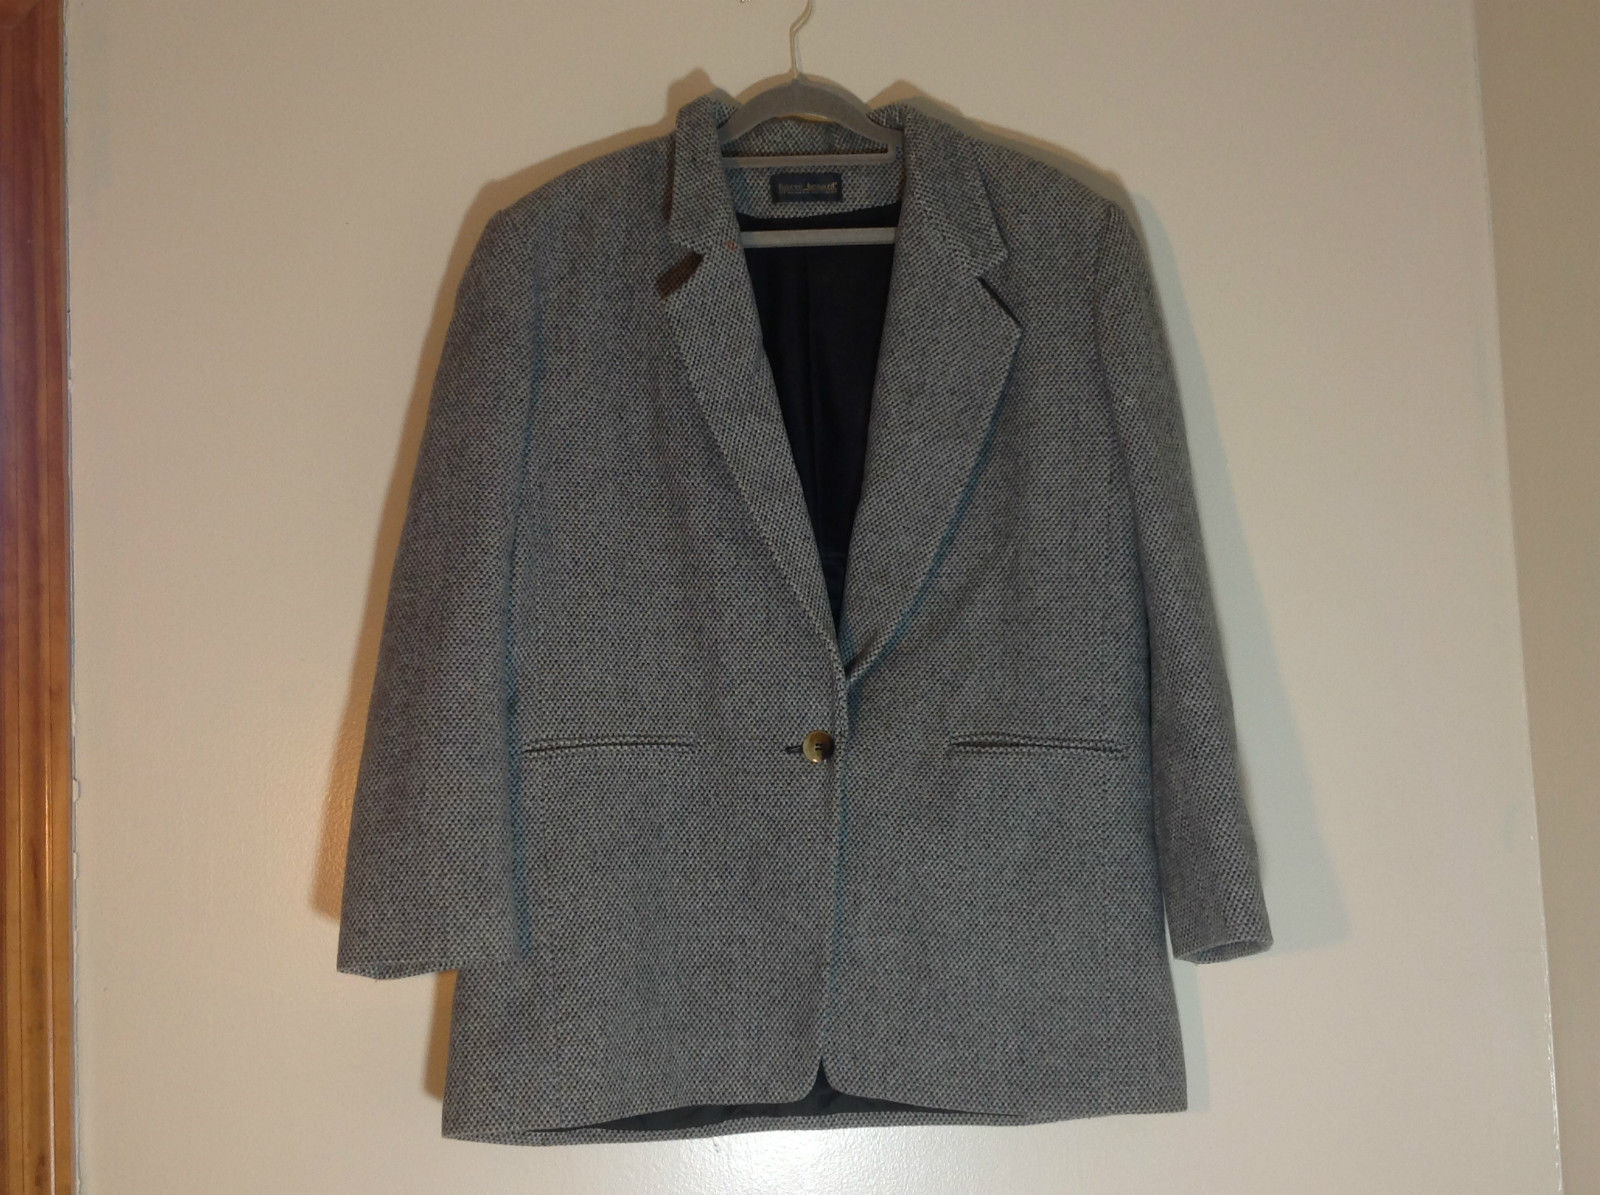 Harve Benard by Benard Holtzman Grey Collared Single Button Suit Coat